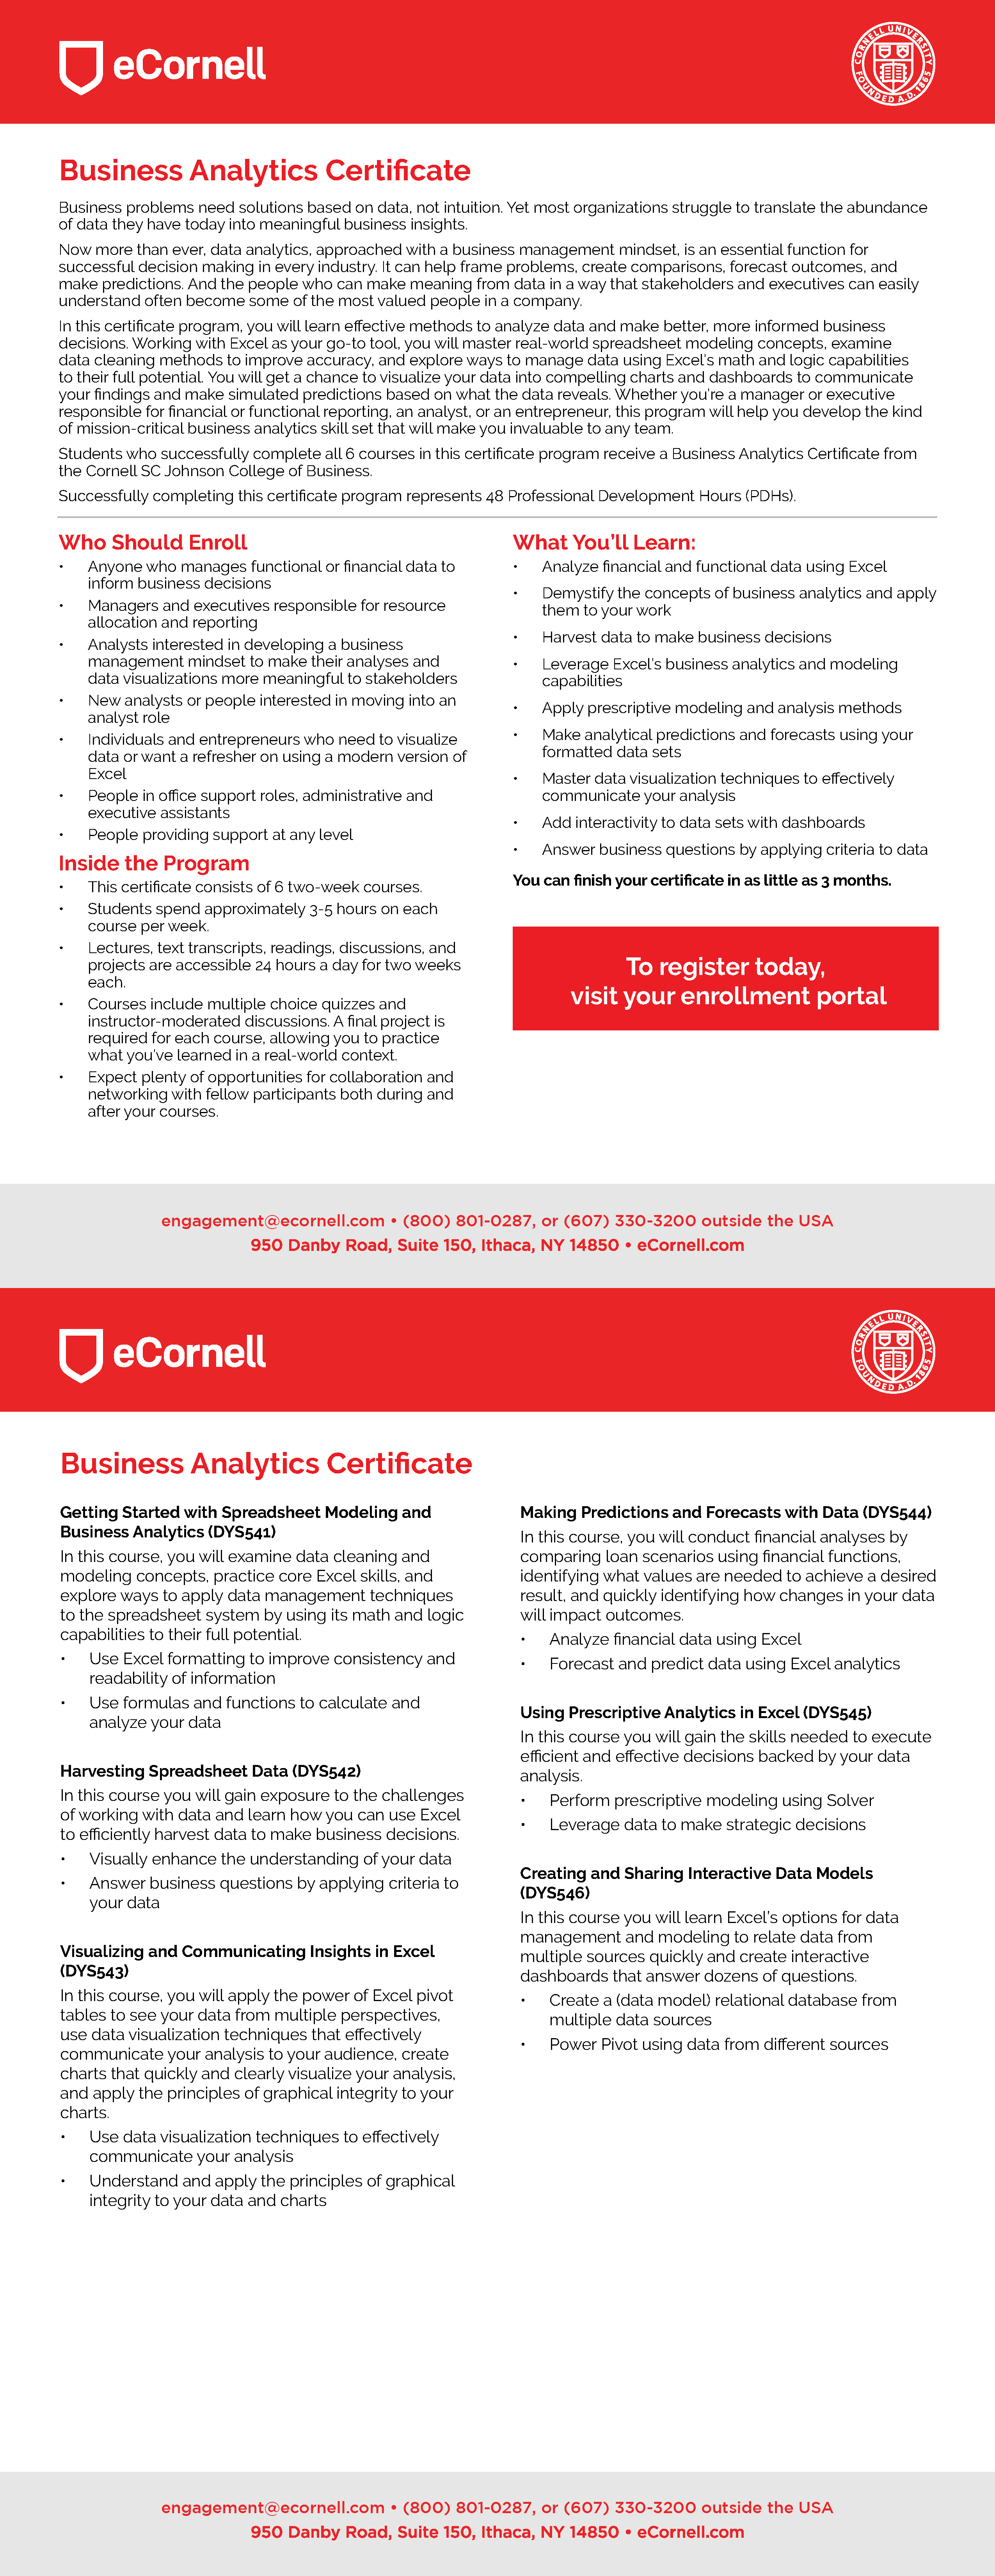 Business Analytics Flyer for Corporations